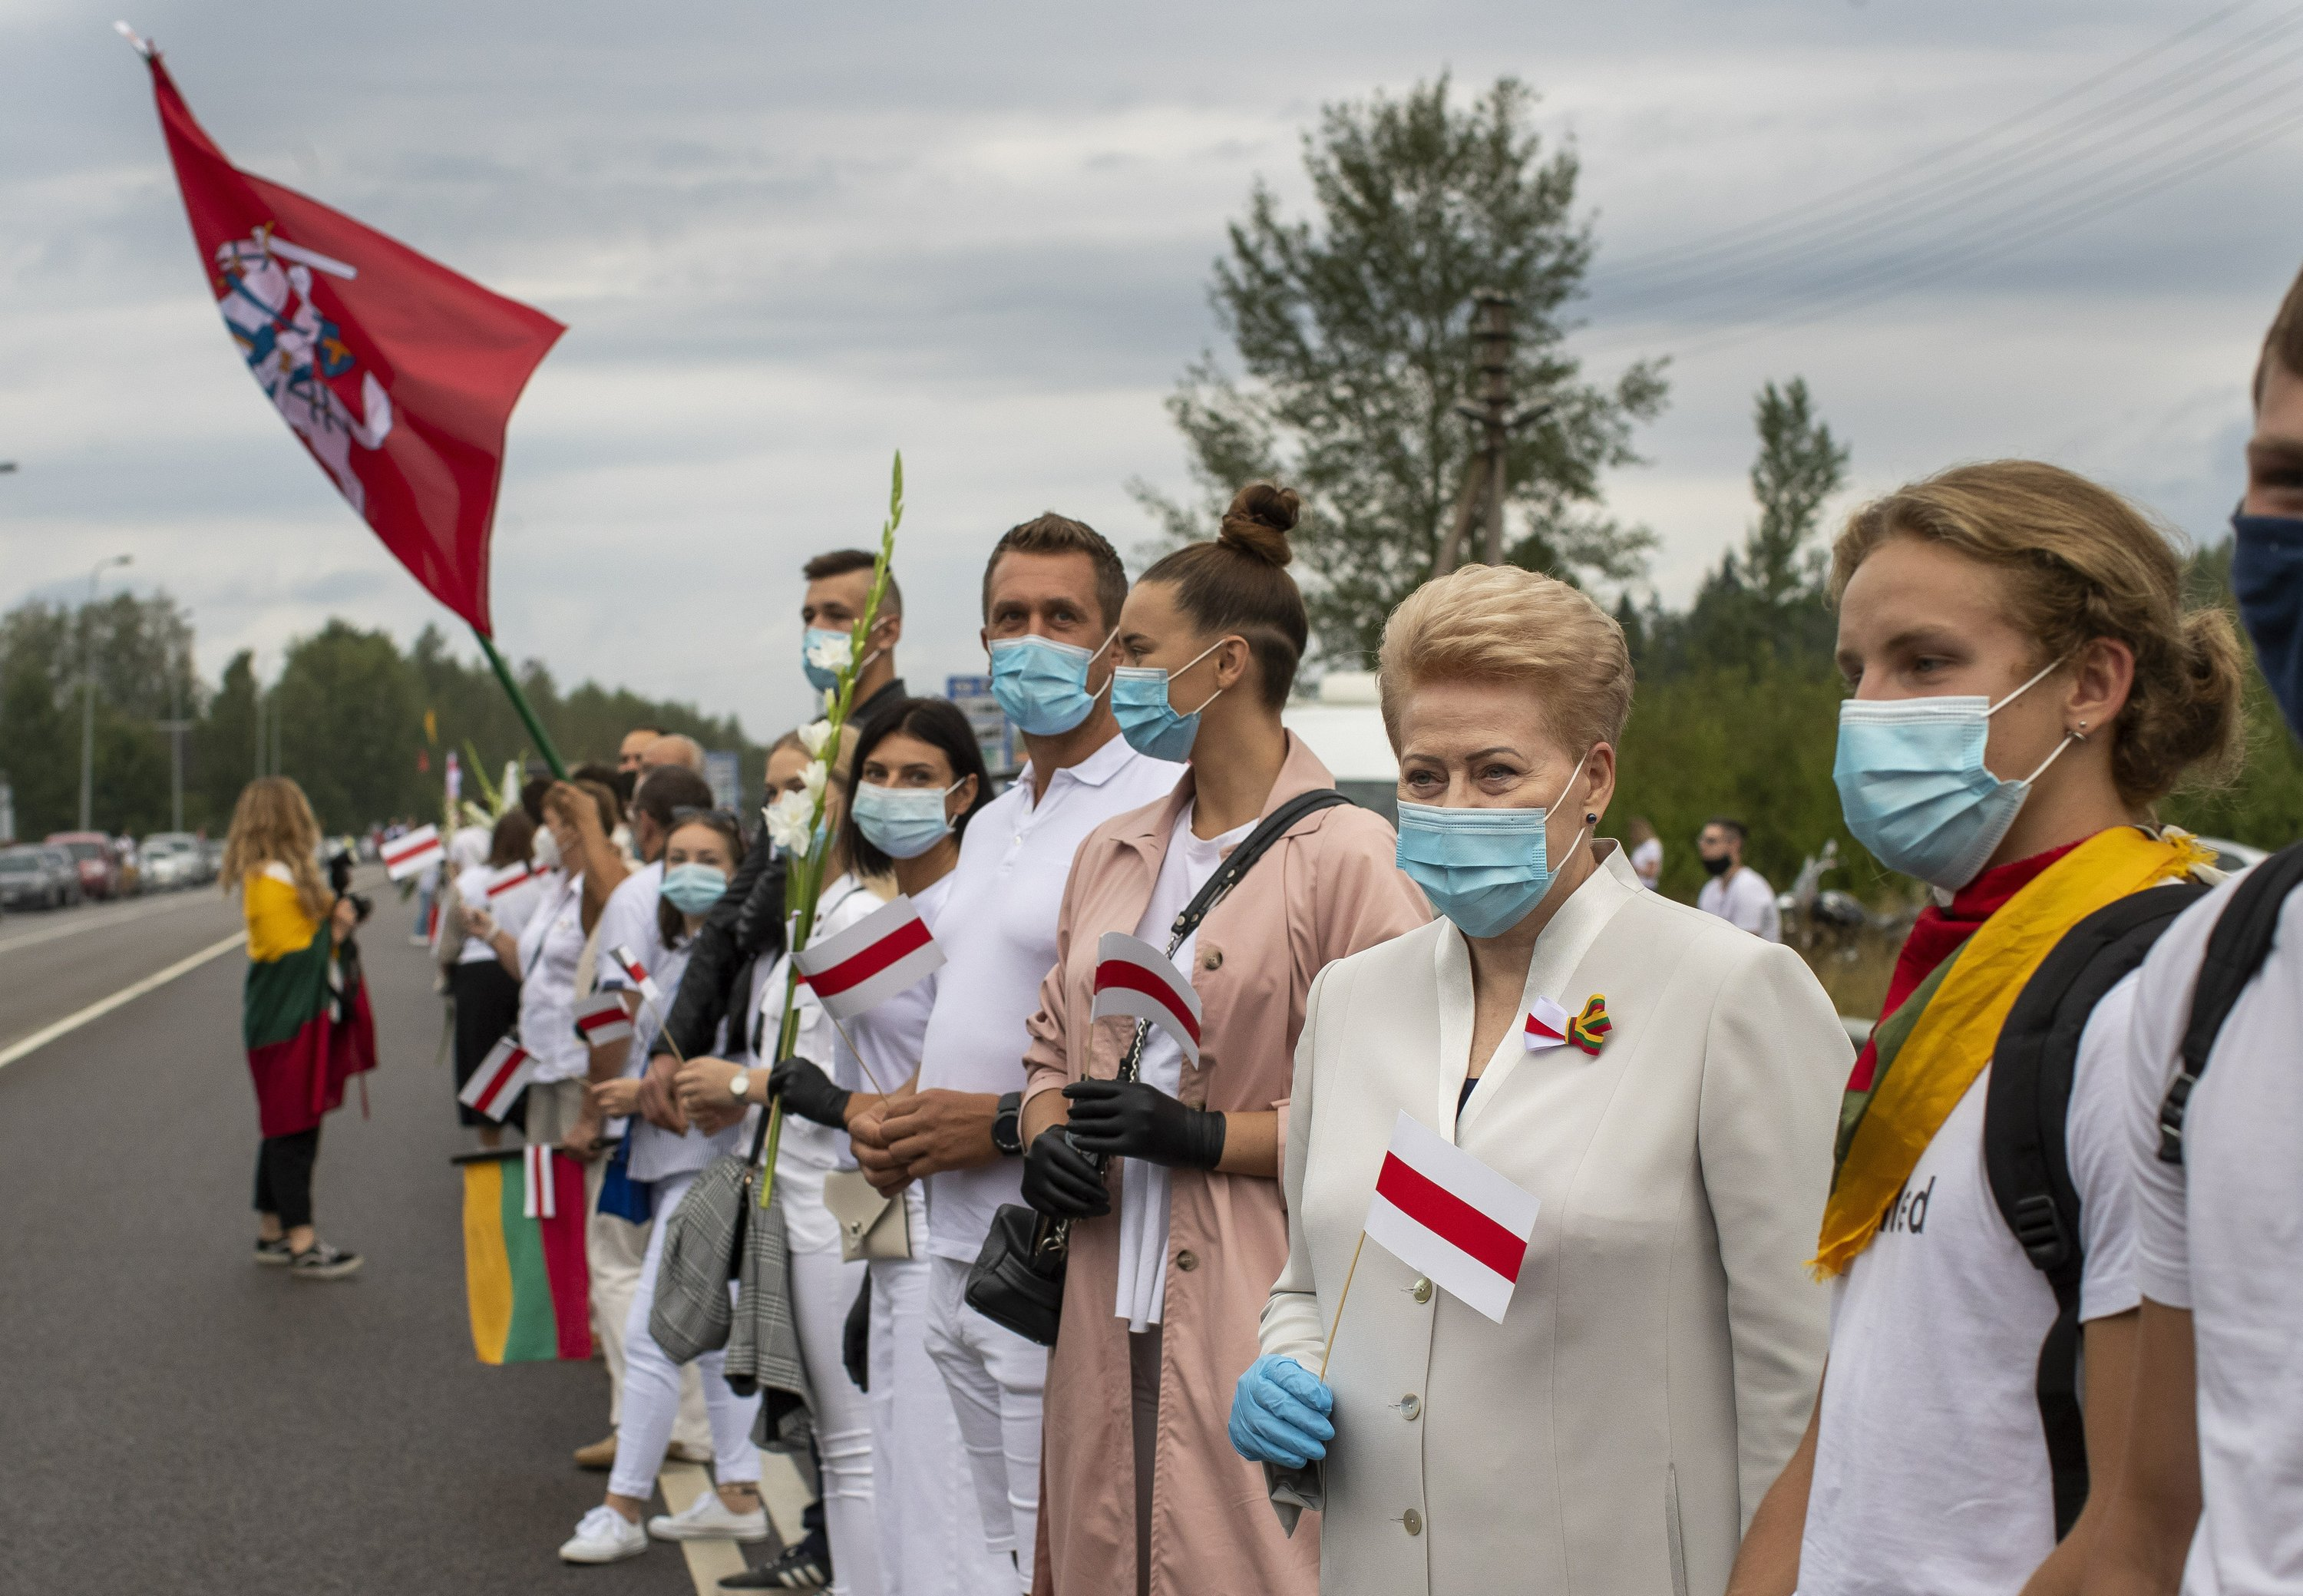 Lithuanians form human chain to back democracy in Belarus